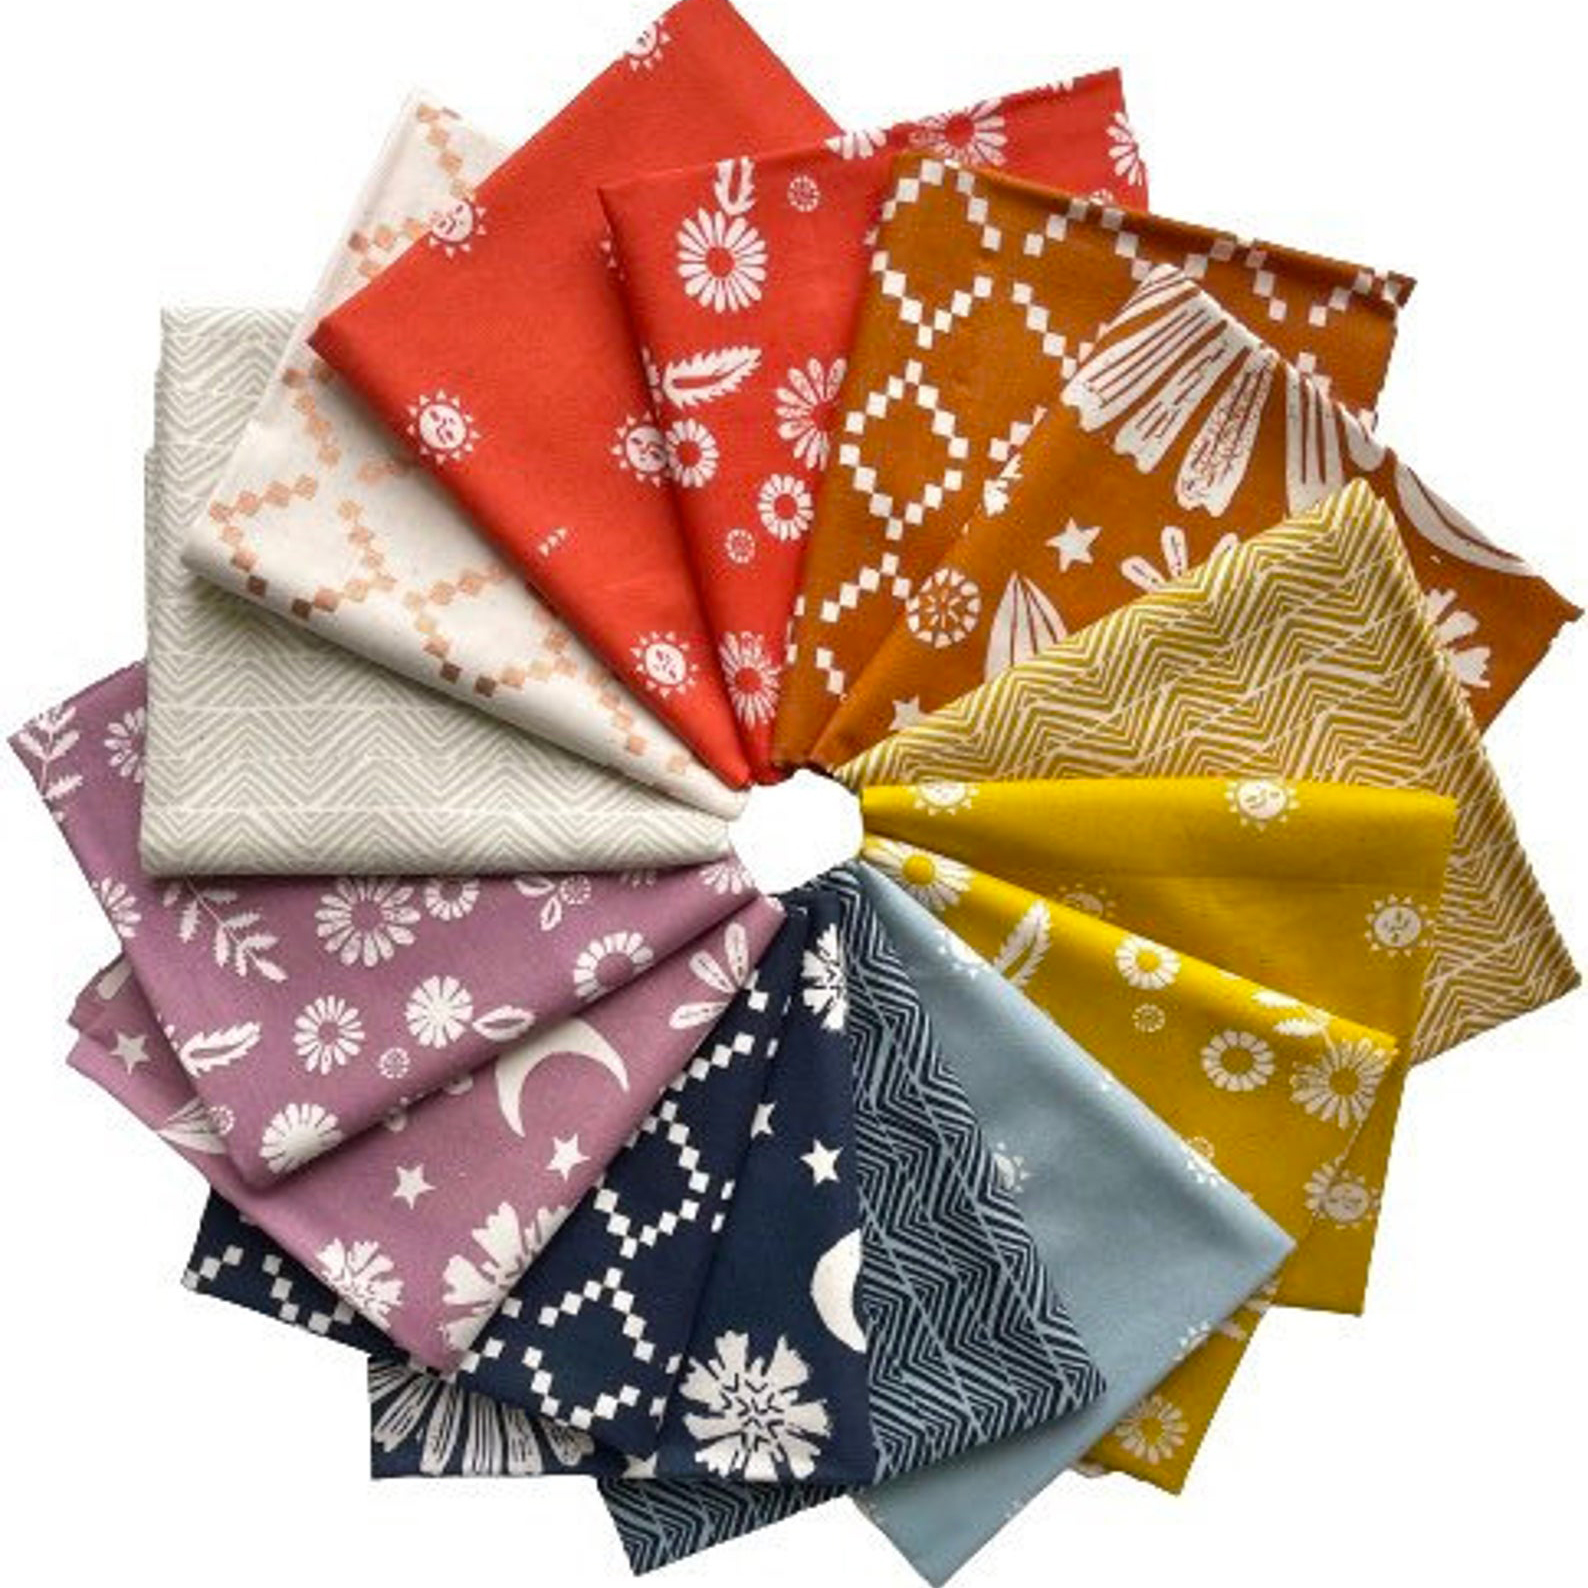 RUBY STAR SOCIETY, Elegante Virgule Canada, Quilting Cotton, Canadian Fabric Shop